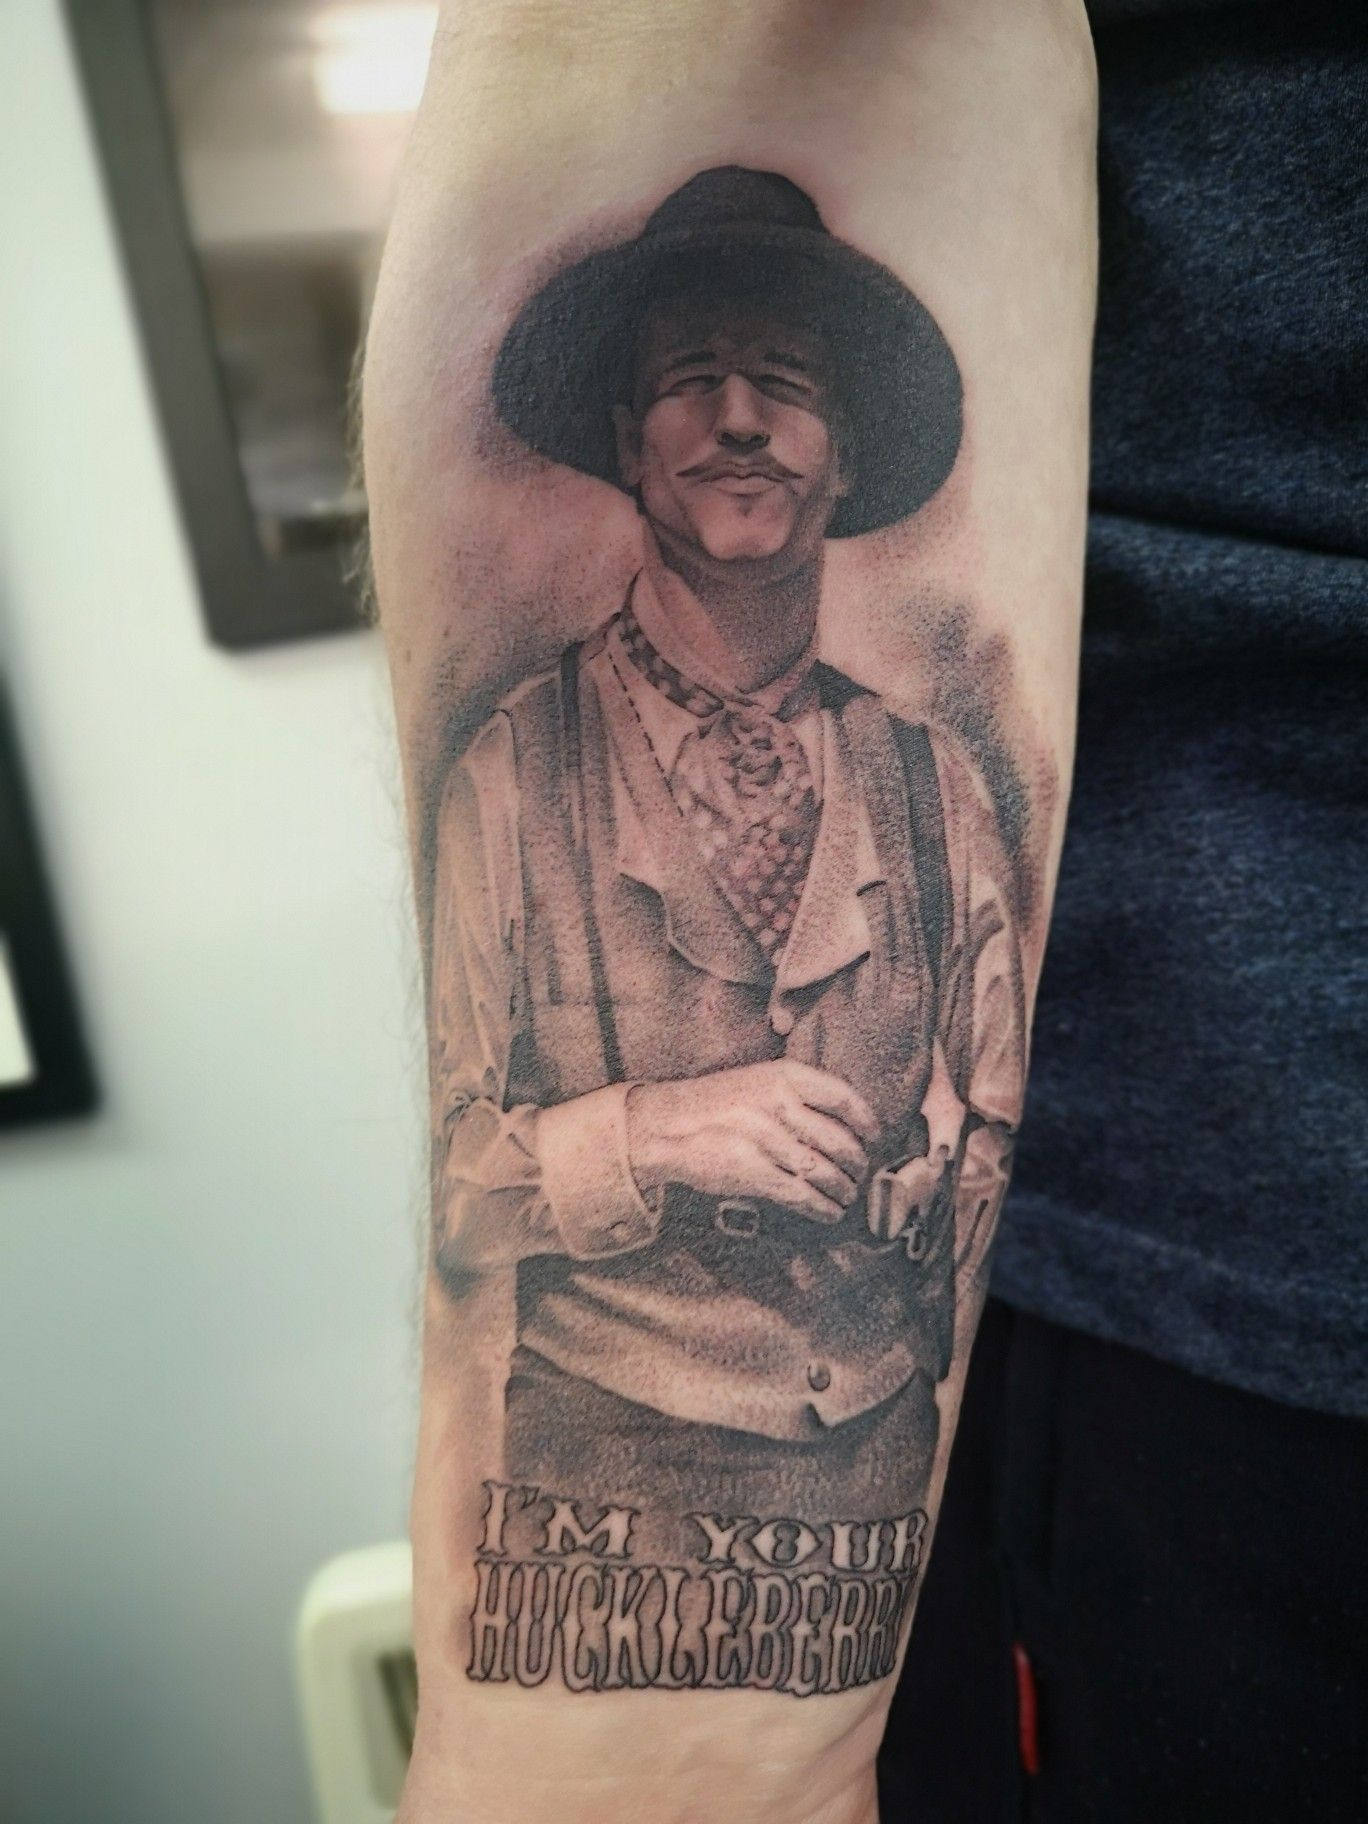 Tombstone Movie Tattoos : tombstone, movie, tattoos, Holliday, Tattoo, Image, Collection